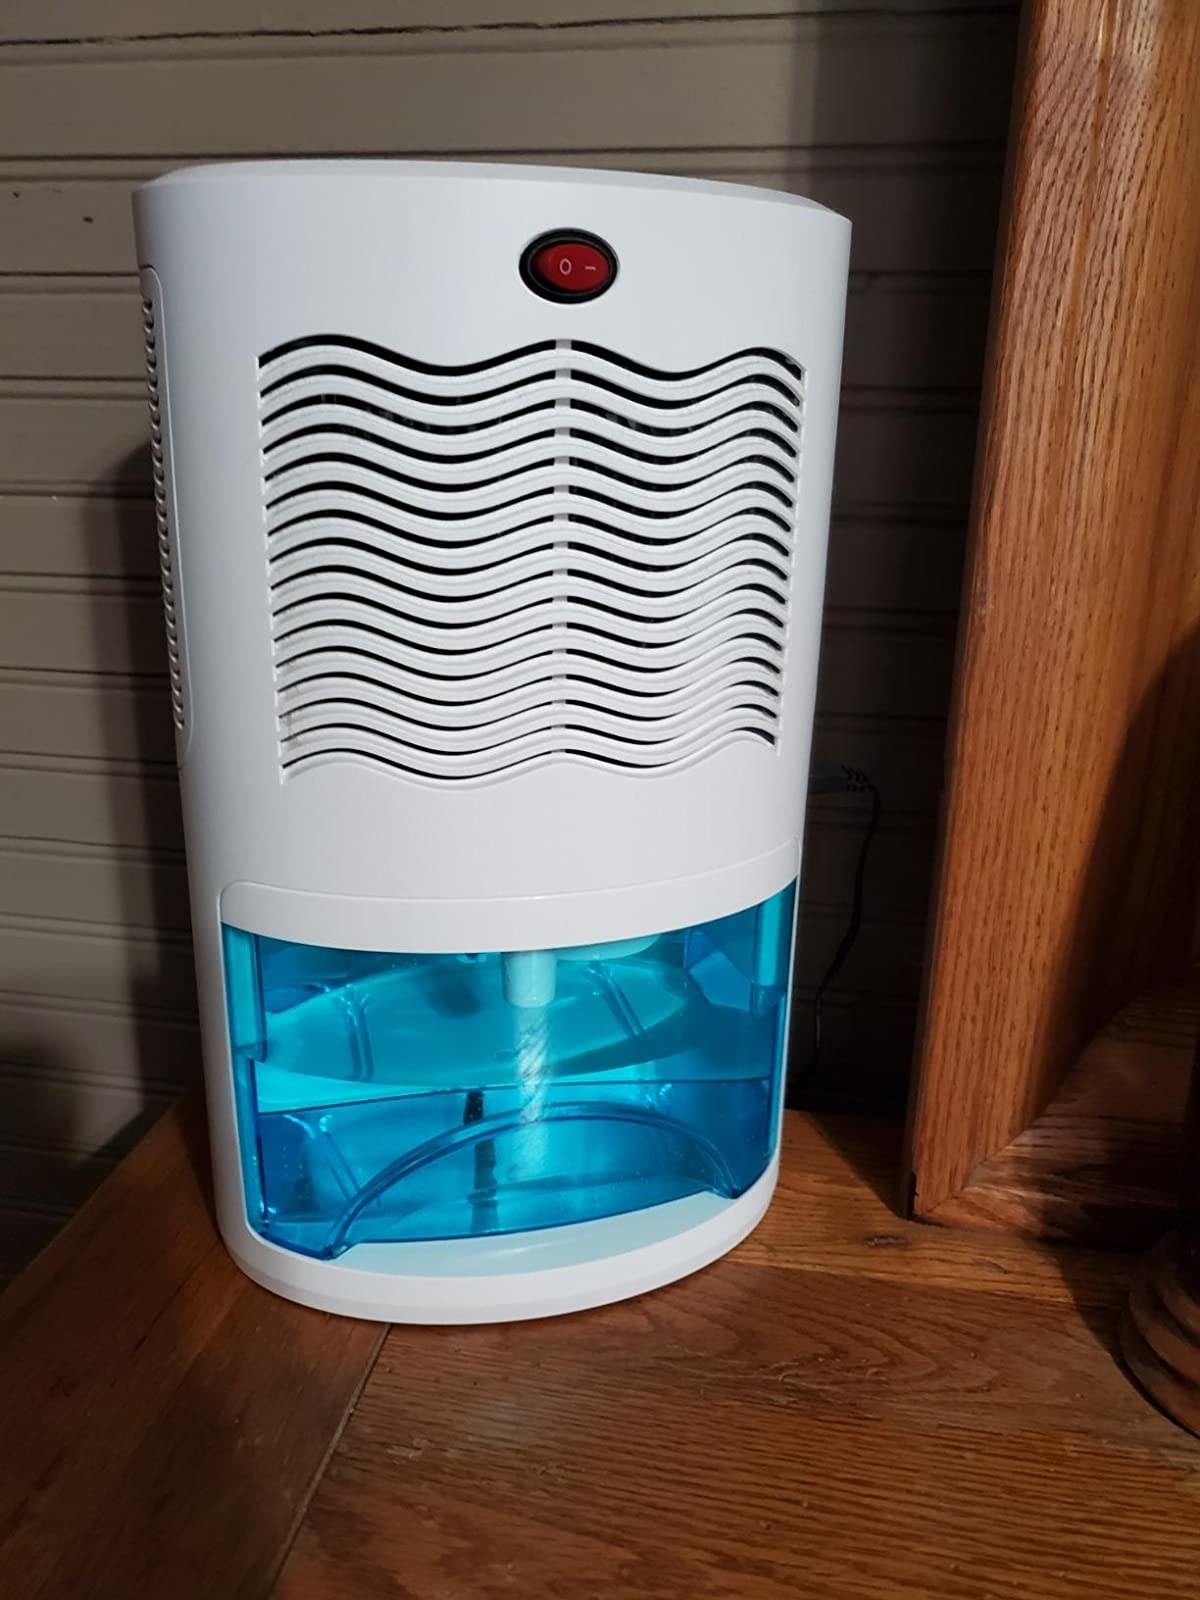 Reviewer's dehumidifier placed on table